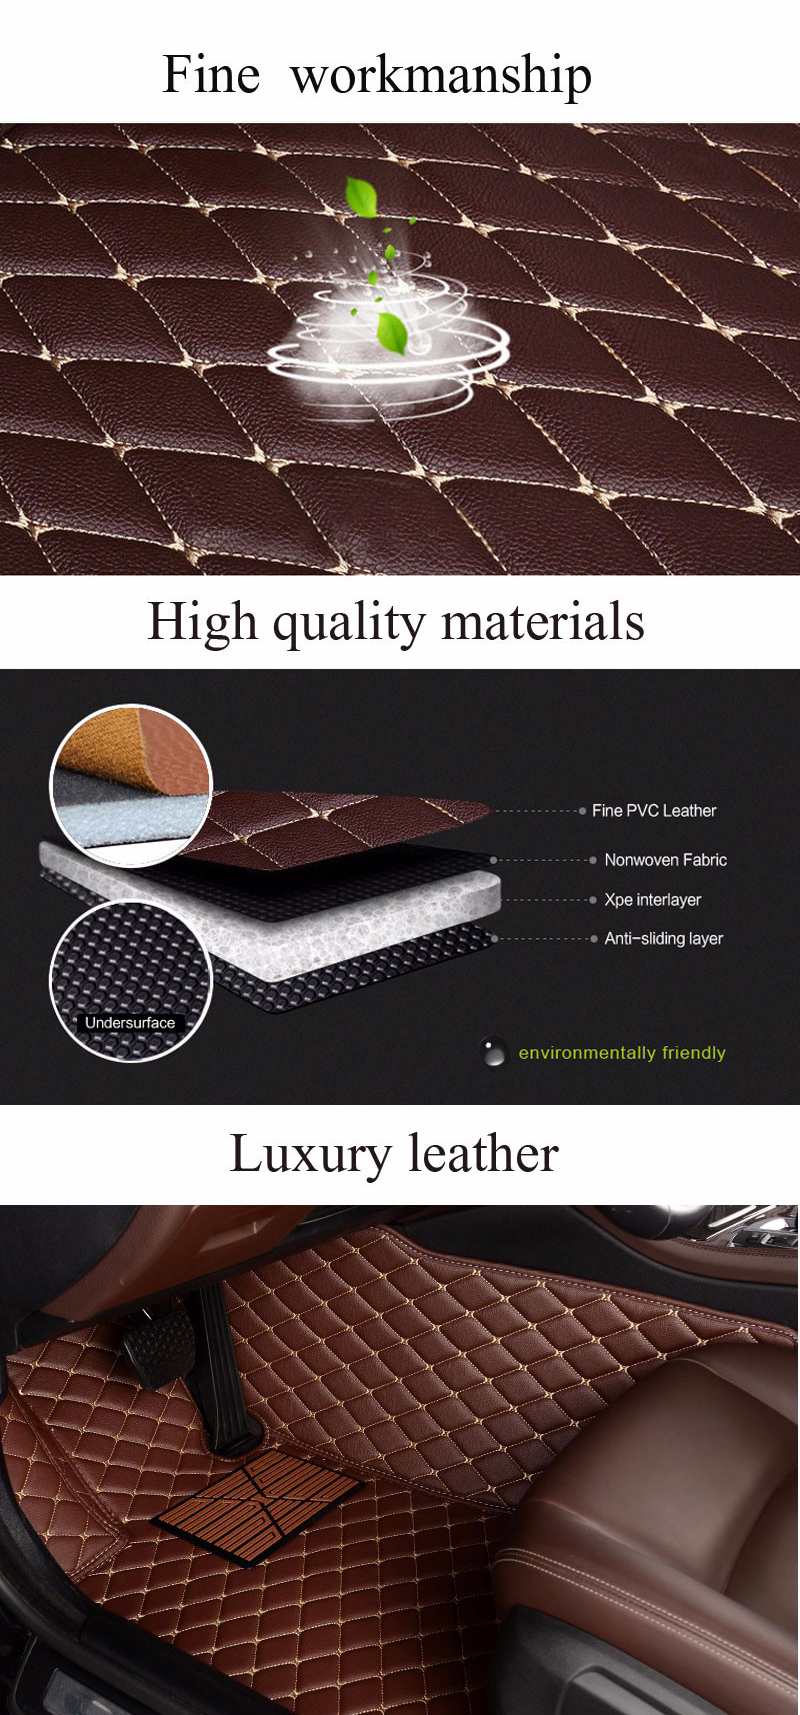 For Ford Escape 2013-2017 leather Car Floor Mats Waterproof Mat